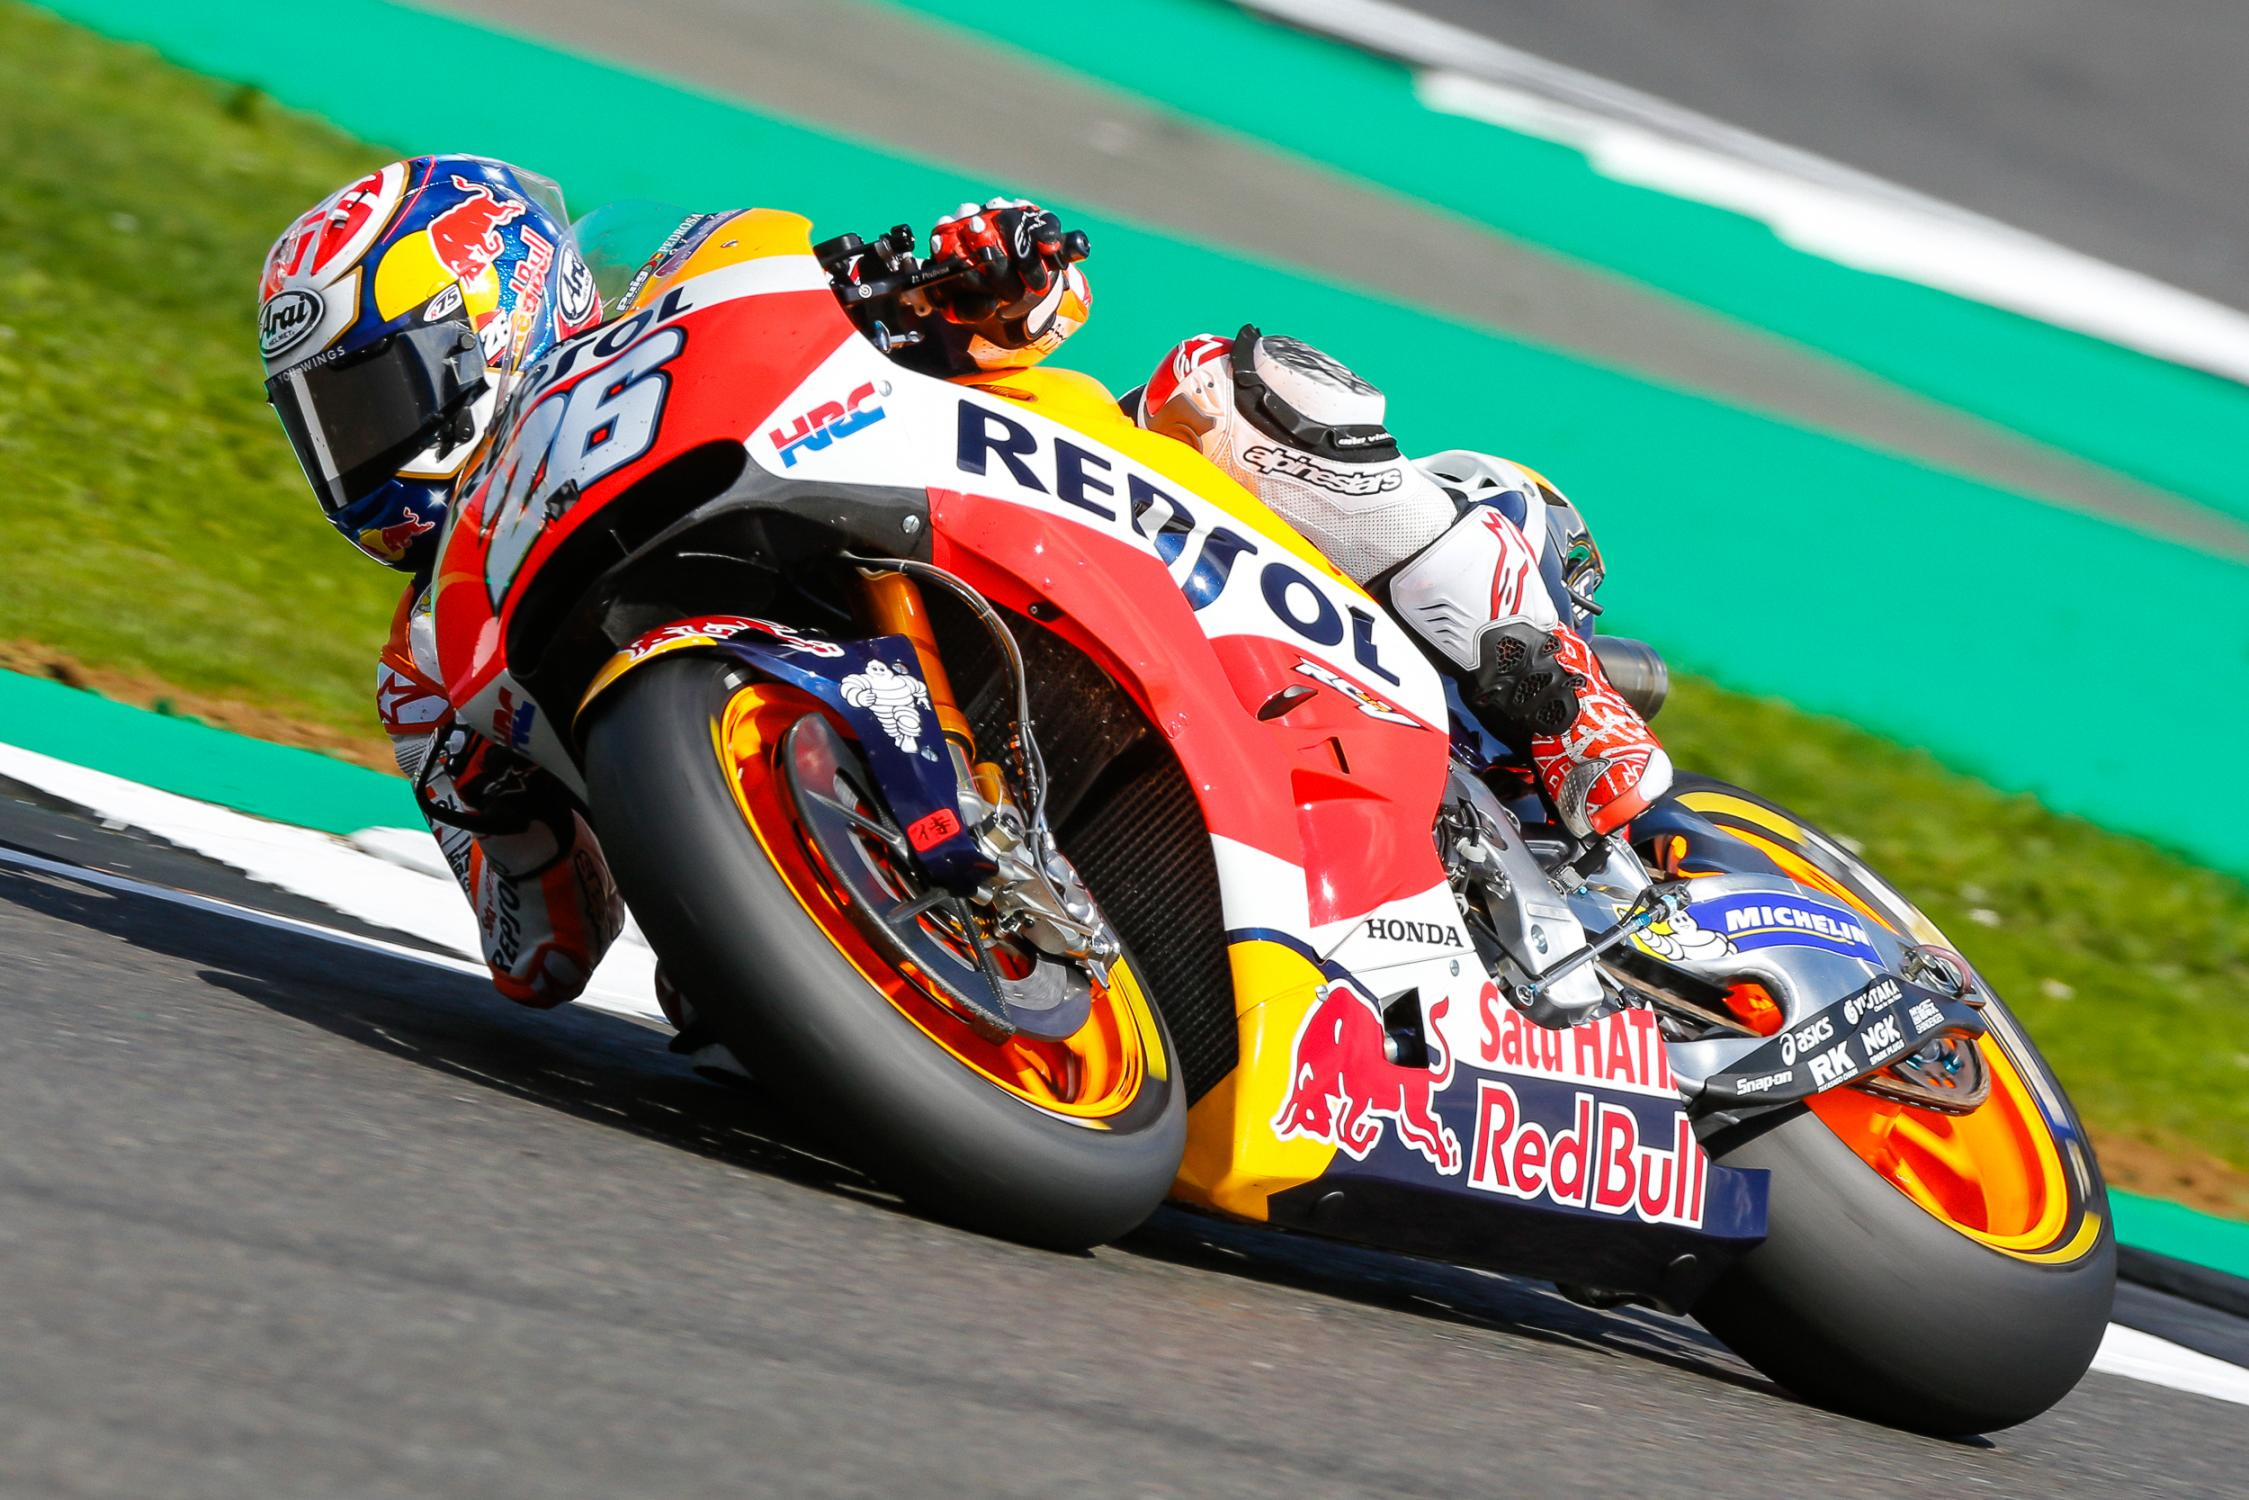 26-dani-pedrosa-esp_gp_7096.gallery_full_top_fullscreen.jpg